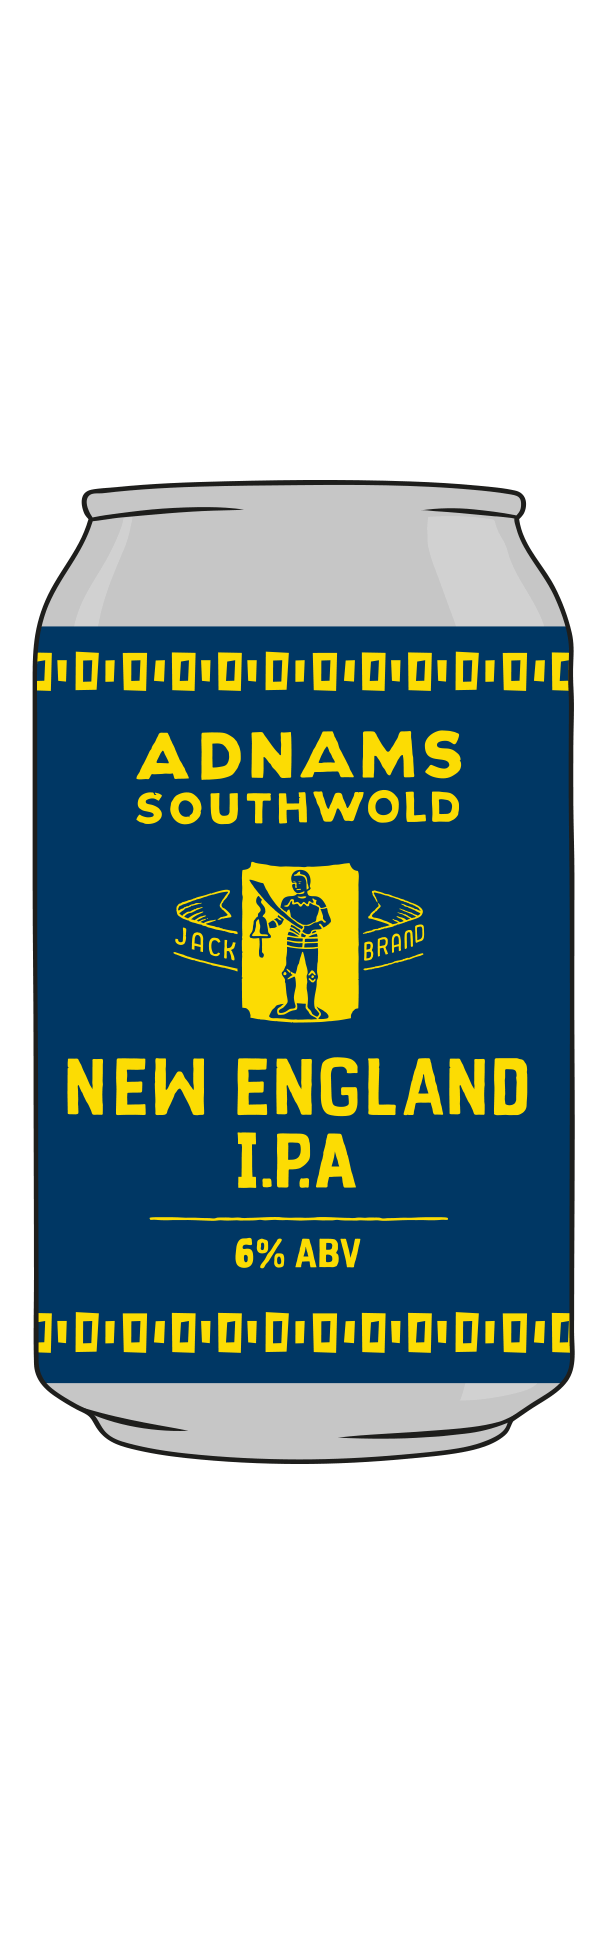 Best Adnams New England IPA Stockists